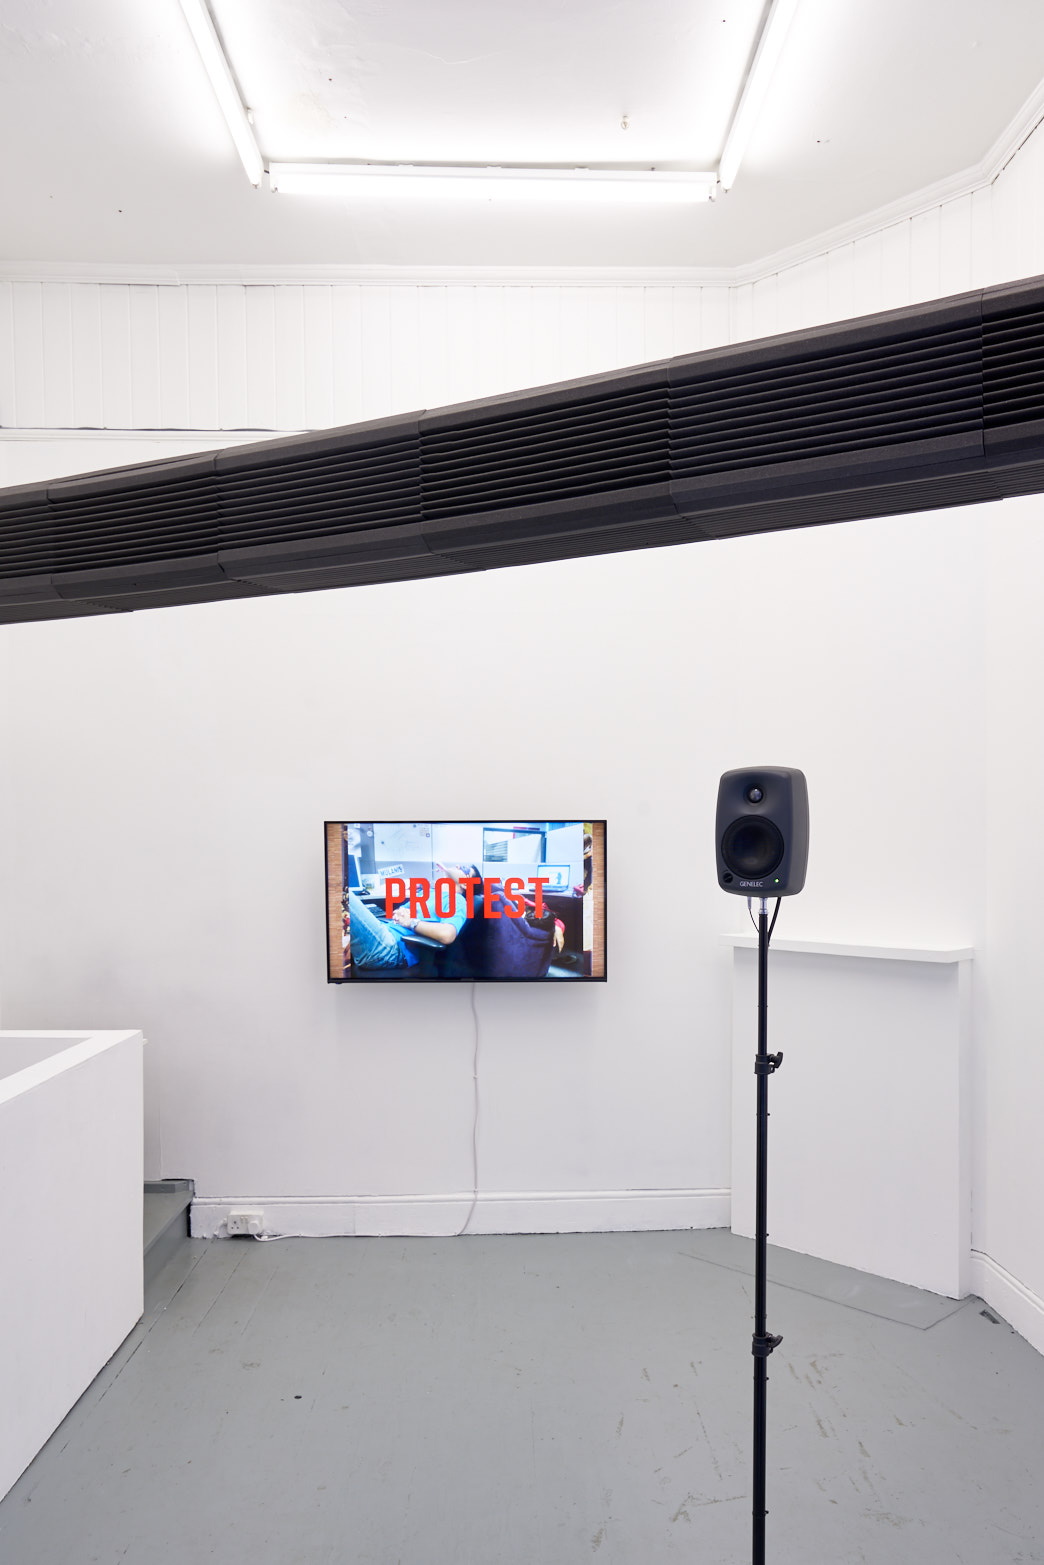 Eyelids Mirrored Within, Installation view, Tenderpixel.